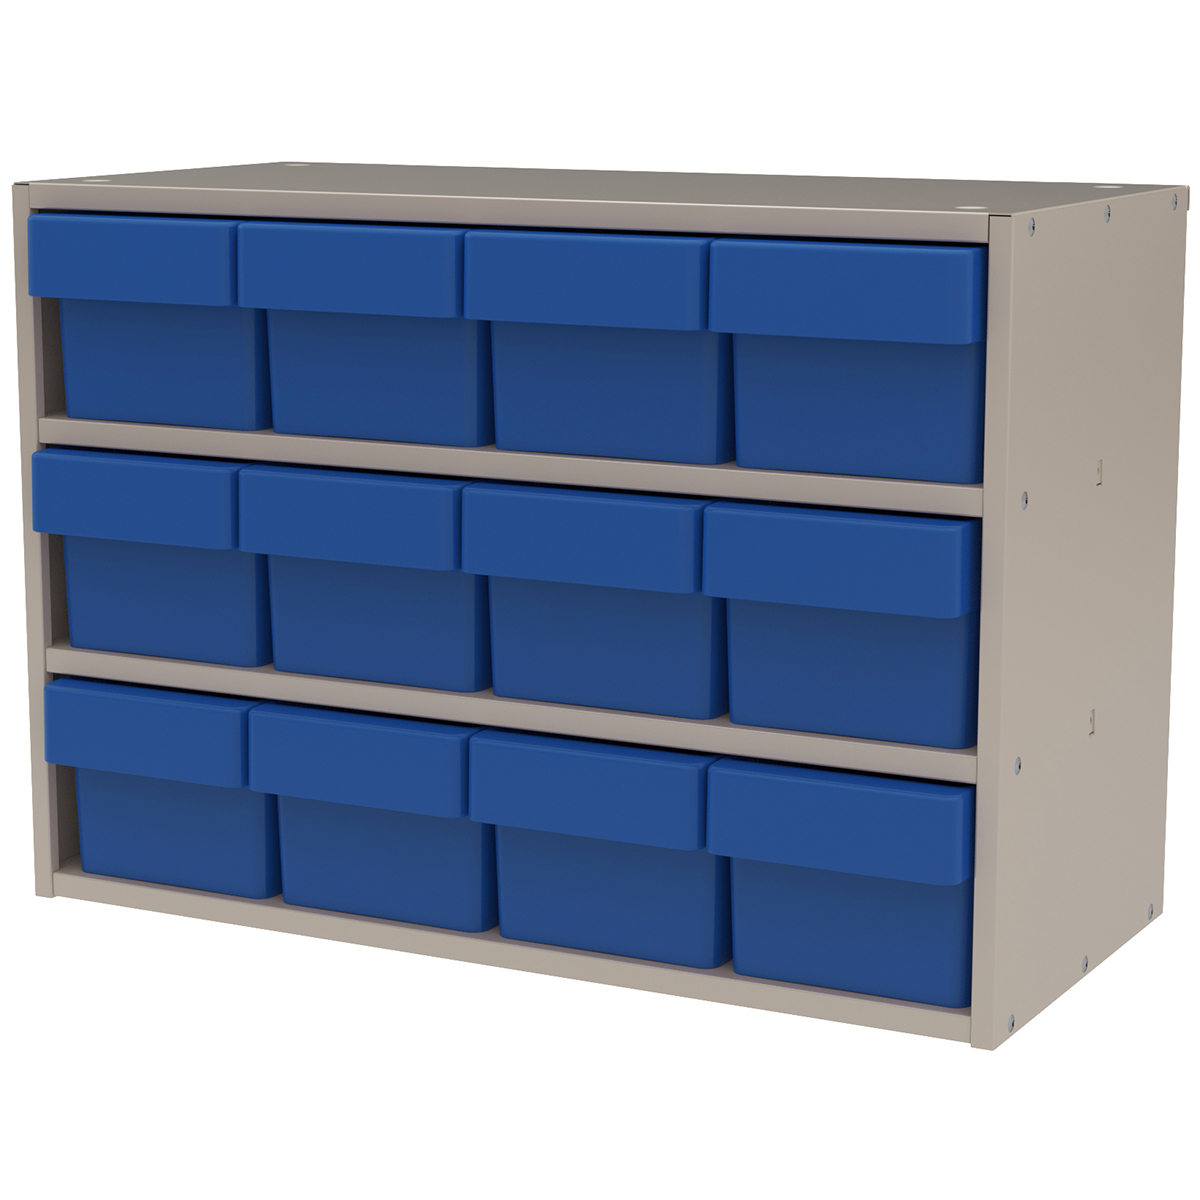 Item DISCONTINUED by Manufacturer.  Modular Cabinet, 23x11x16, 12 Drawers, Putty/Blue (AD2311P62BLU).  This item sold in carton quantities of 1.